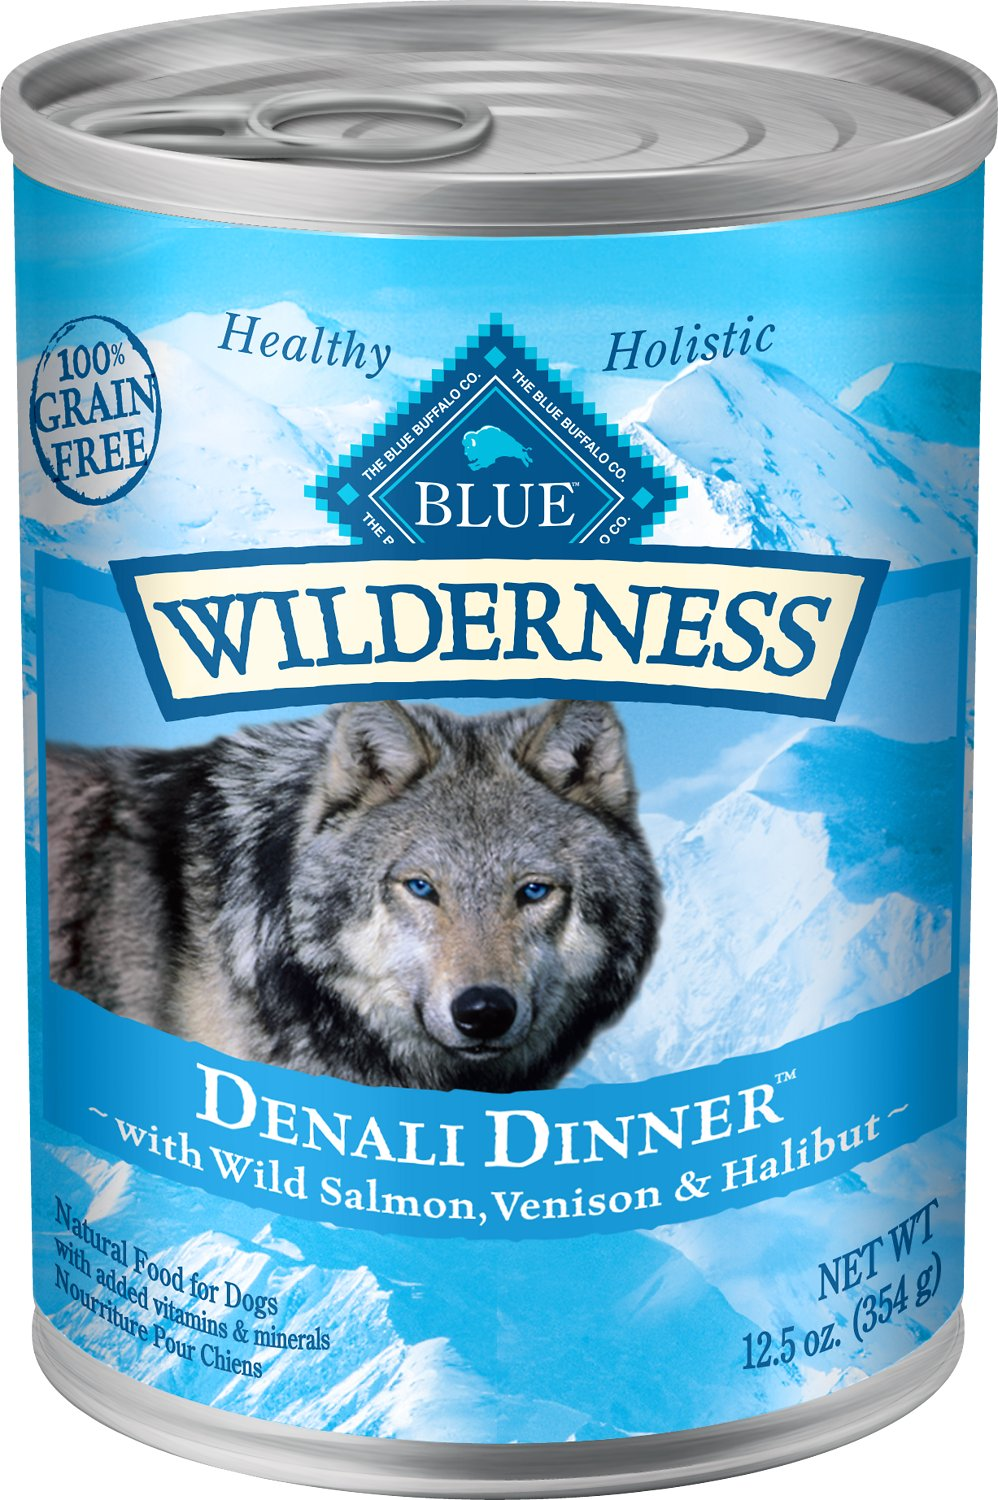 Blue Buffalo Wilderness Denali Dinner with Wild Salmon, Venison & Halibut Grain-Free Canned Dog Food Image